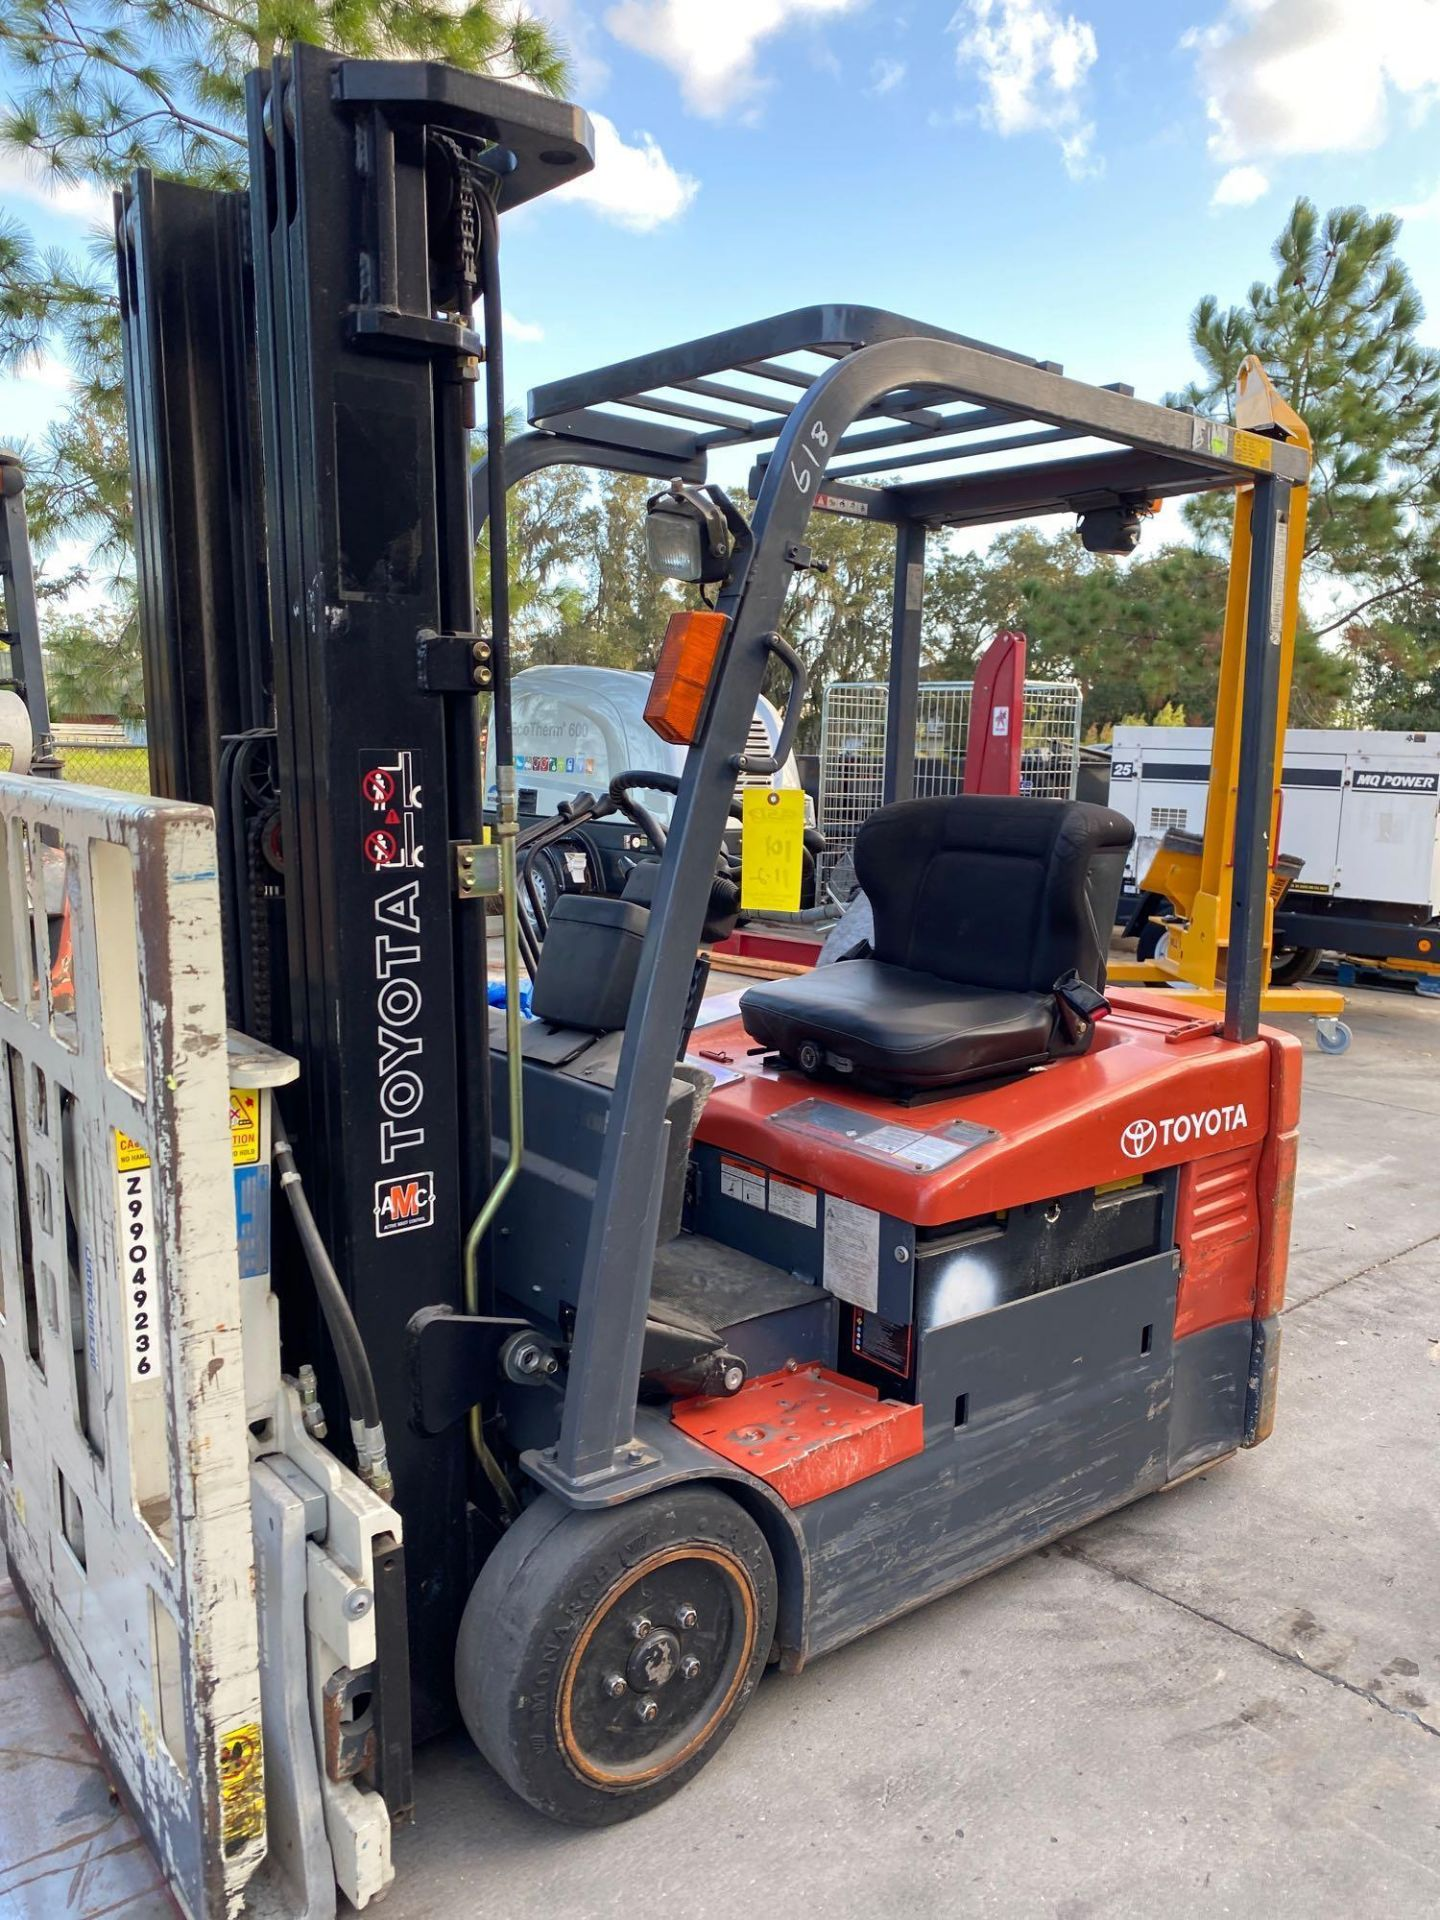 TOYOTA ELECTRIC FORKLIFT MODEL 7FBEU20, 4,000 LB CAPACITY, CASCADE PUSH/PULL ATTACHMENT, TILT, SIDE - Image 6 of 24